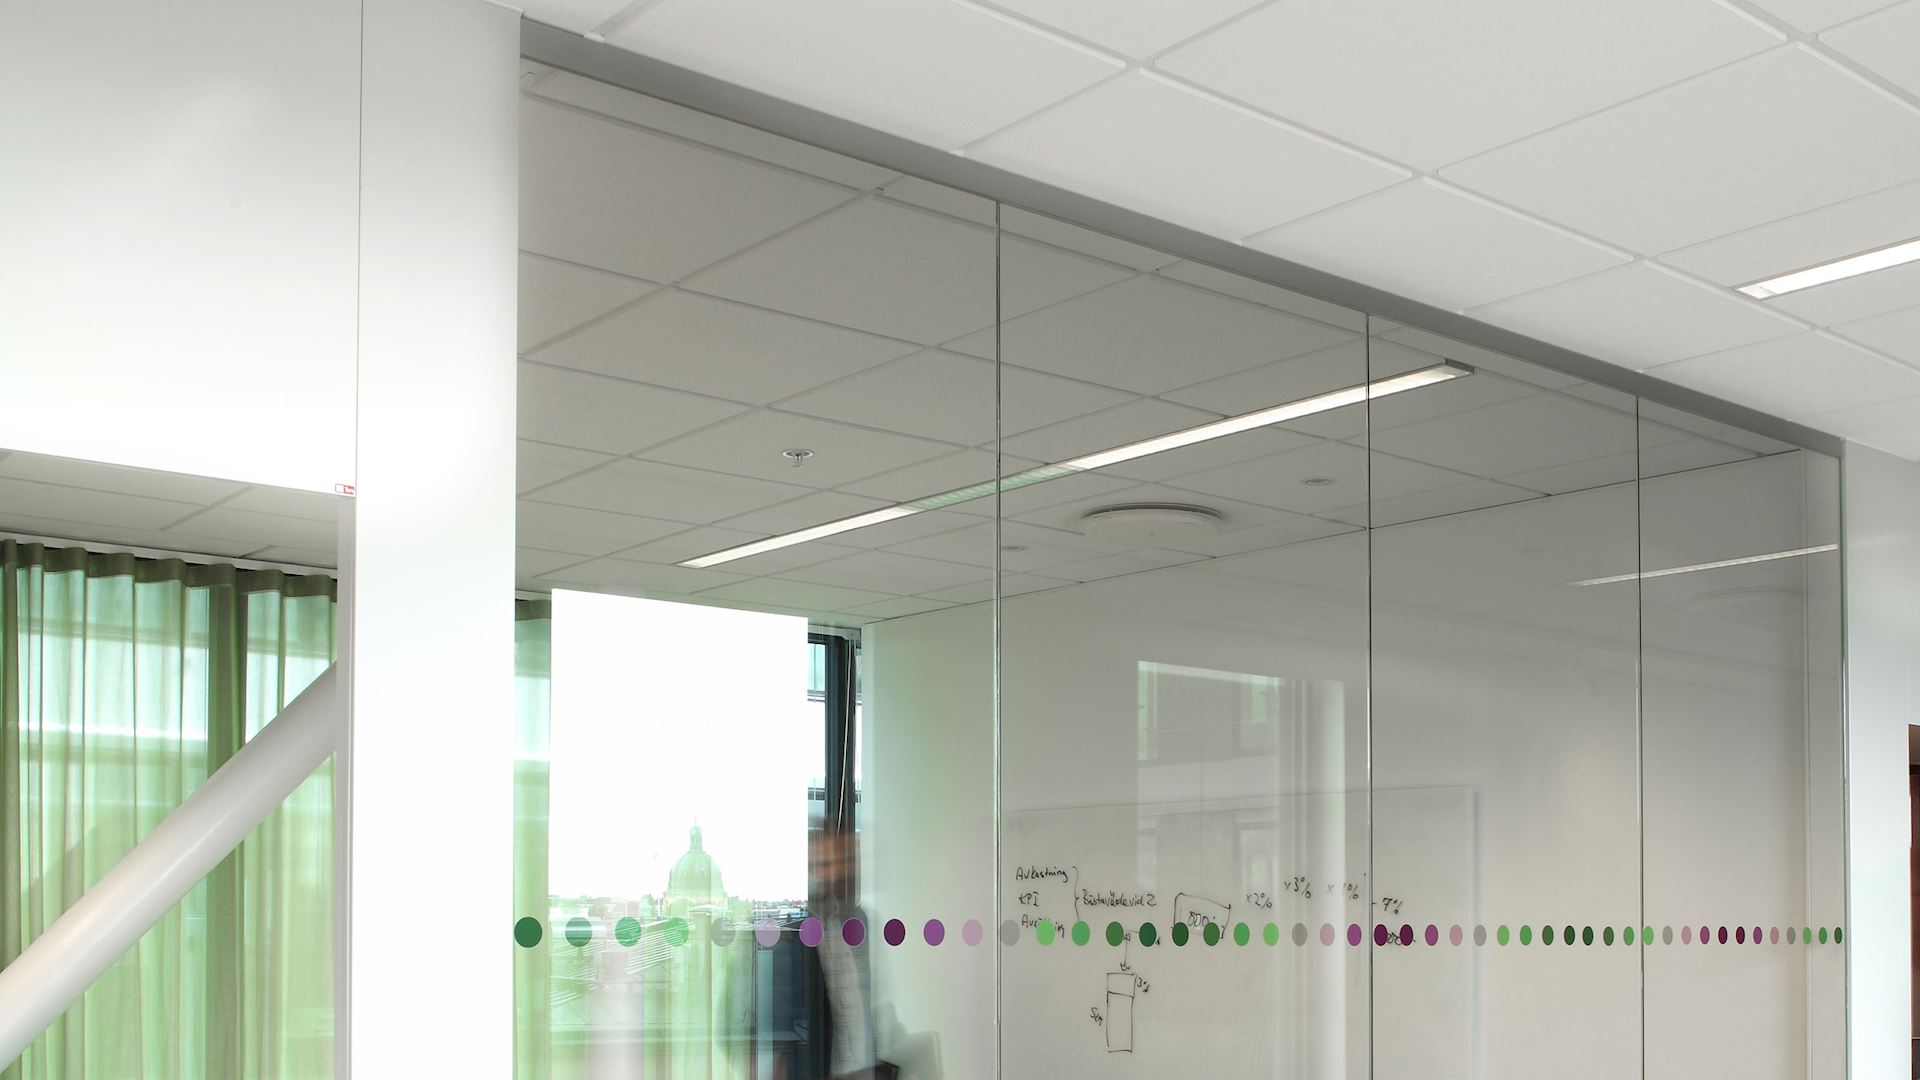 Acoustic barriers with Rockfon Acoustimass (reduce noise transfer in ceiling and floor plenums, excellent fire safety)